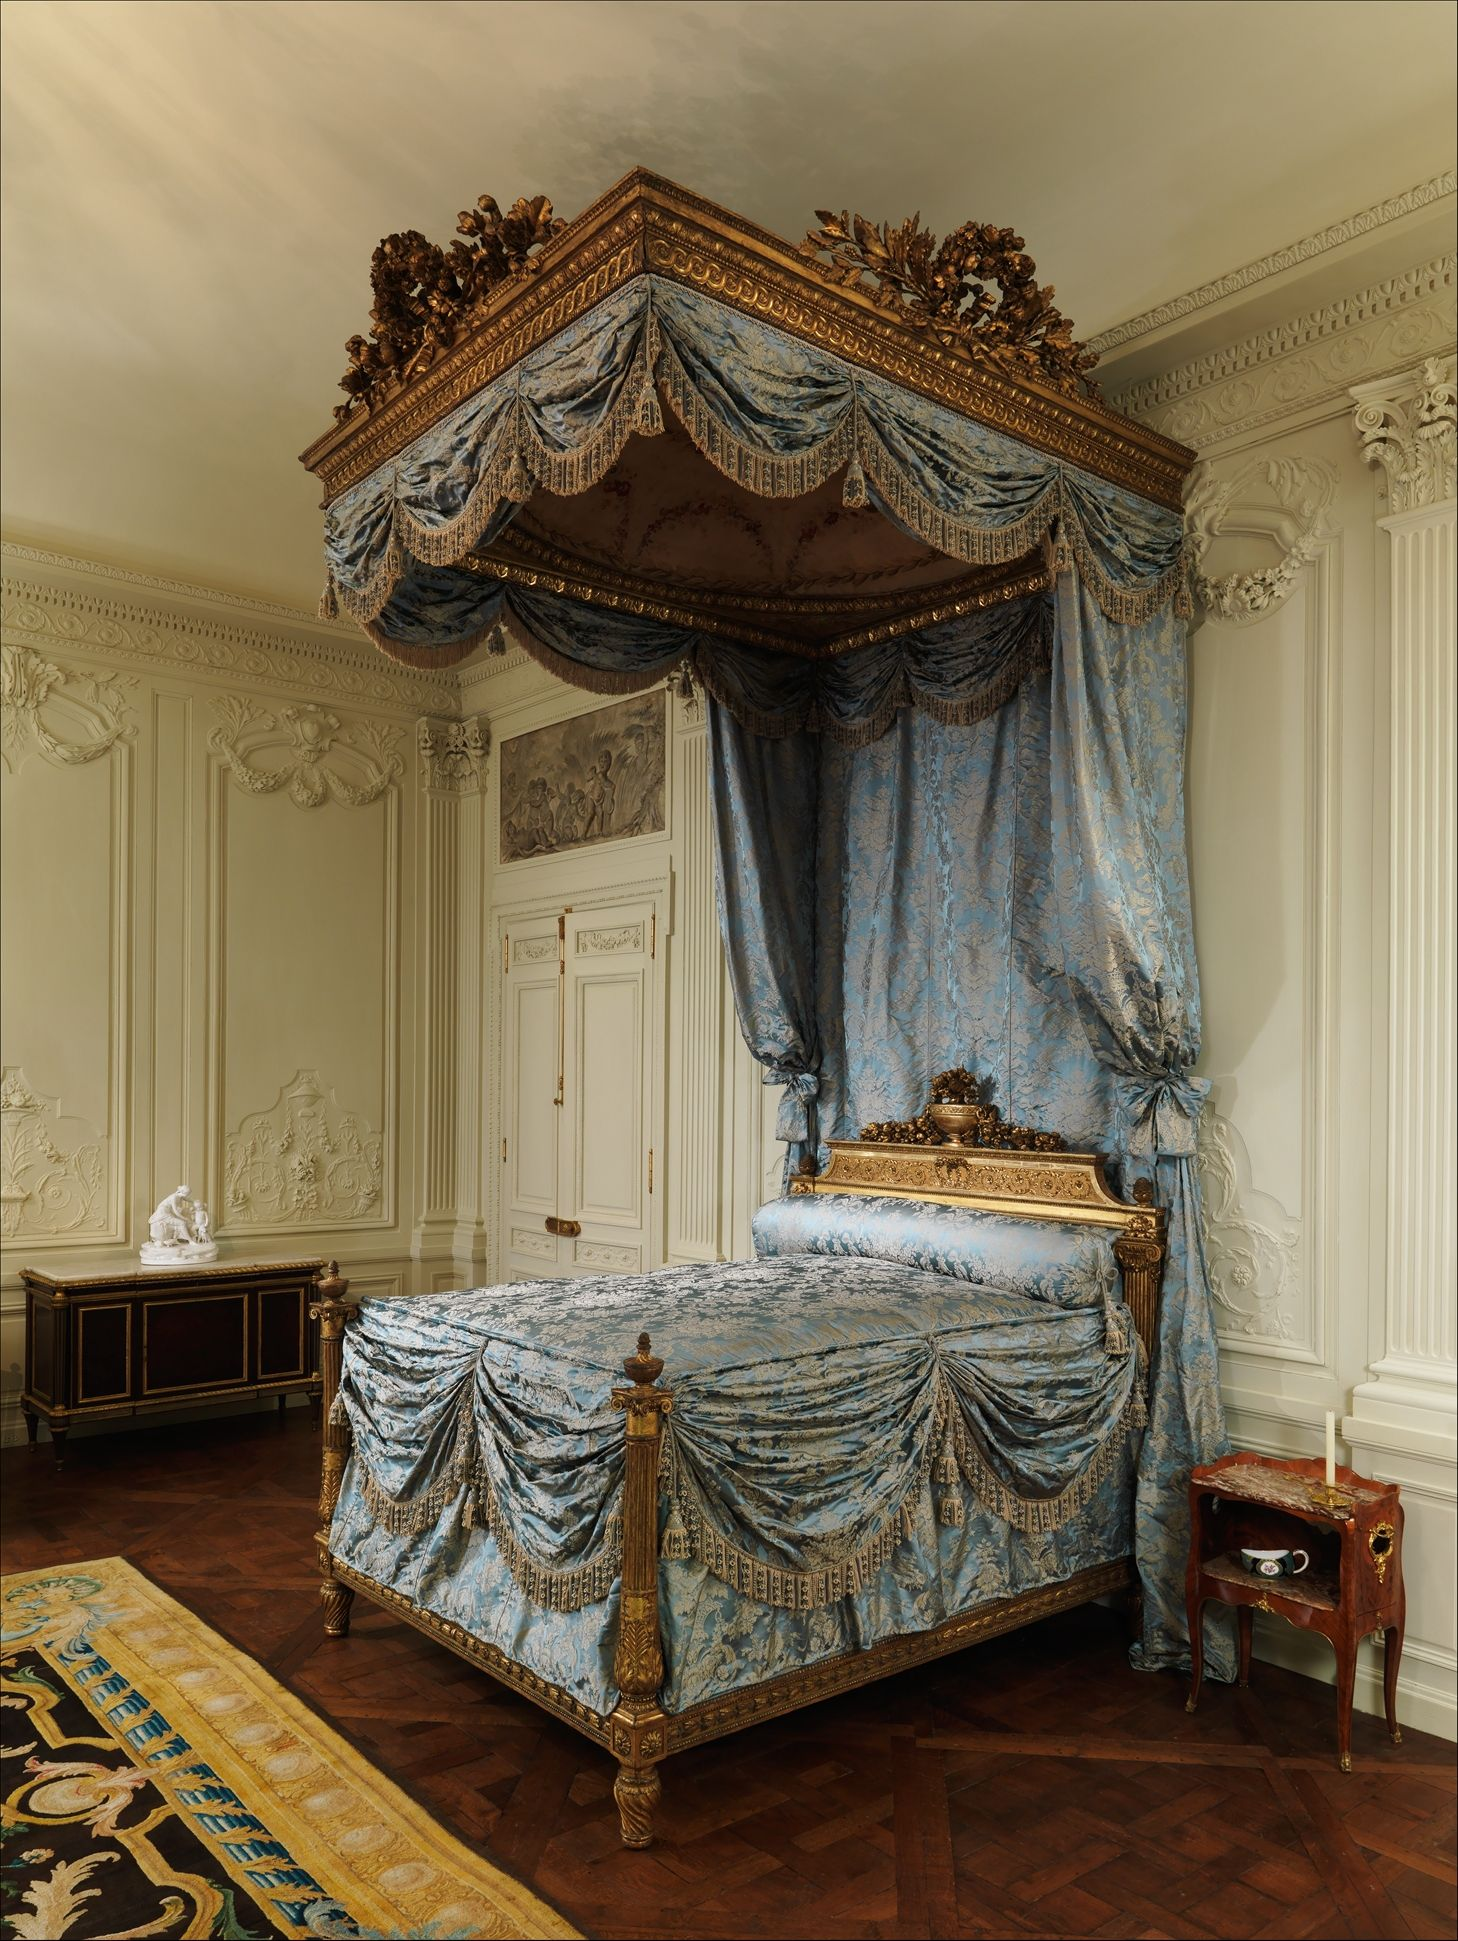 Boiserie from the Hôtel Lauzun French, Paris The